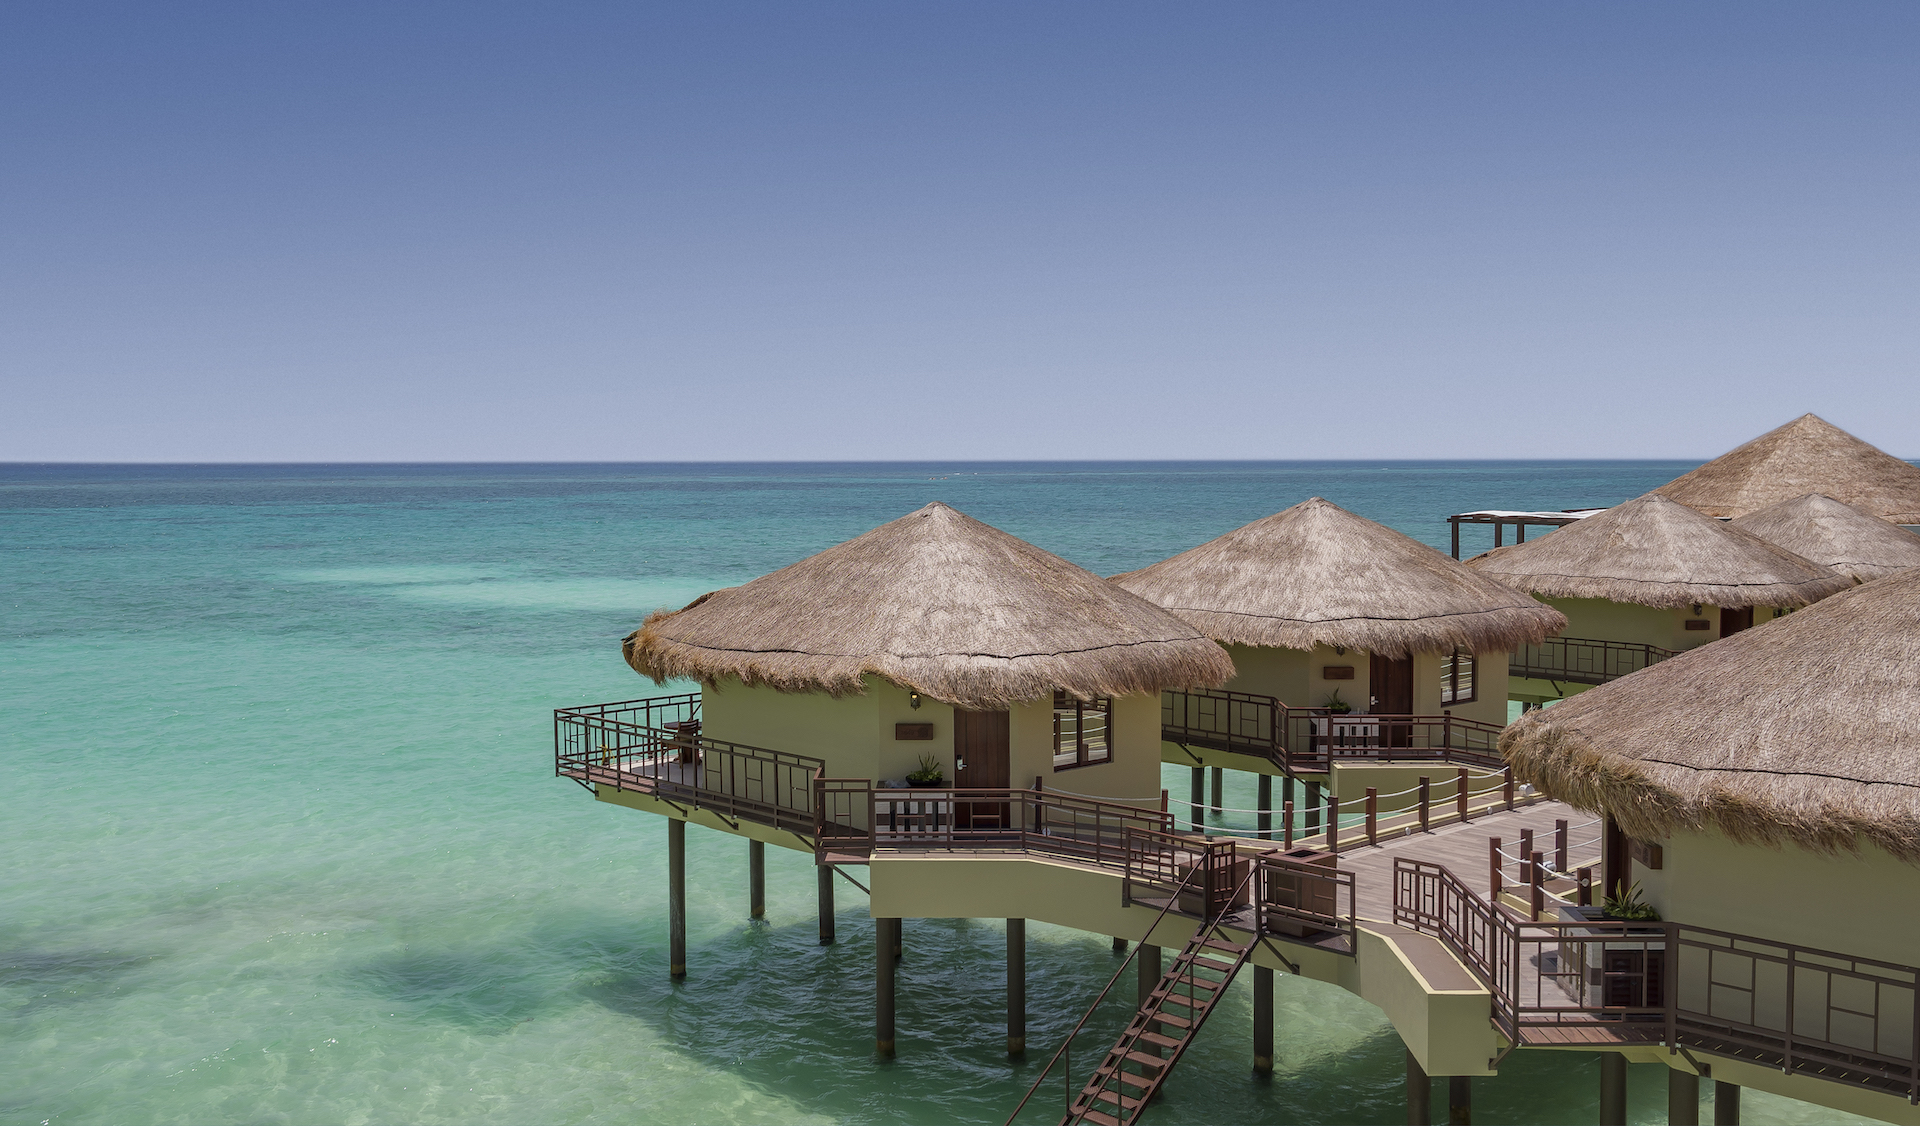 EDM_0023_Bungalow_from_Water_Daytime.jpg